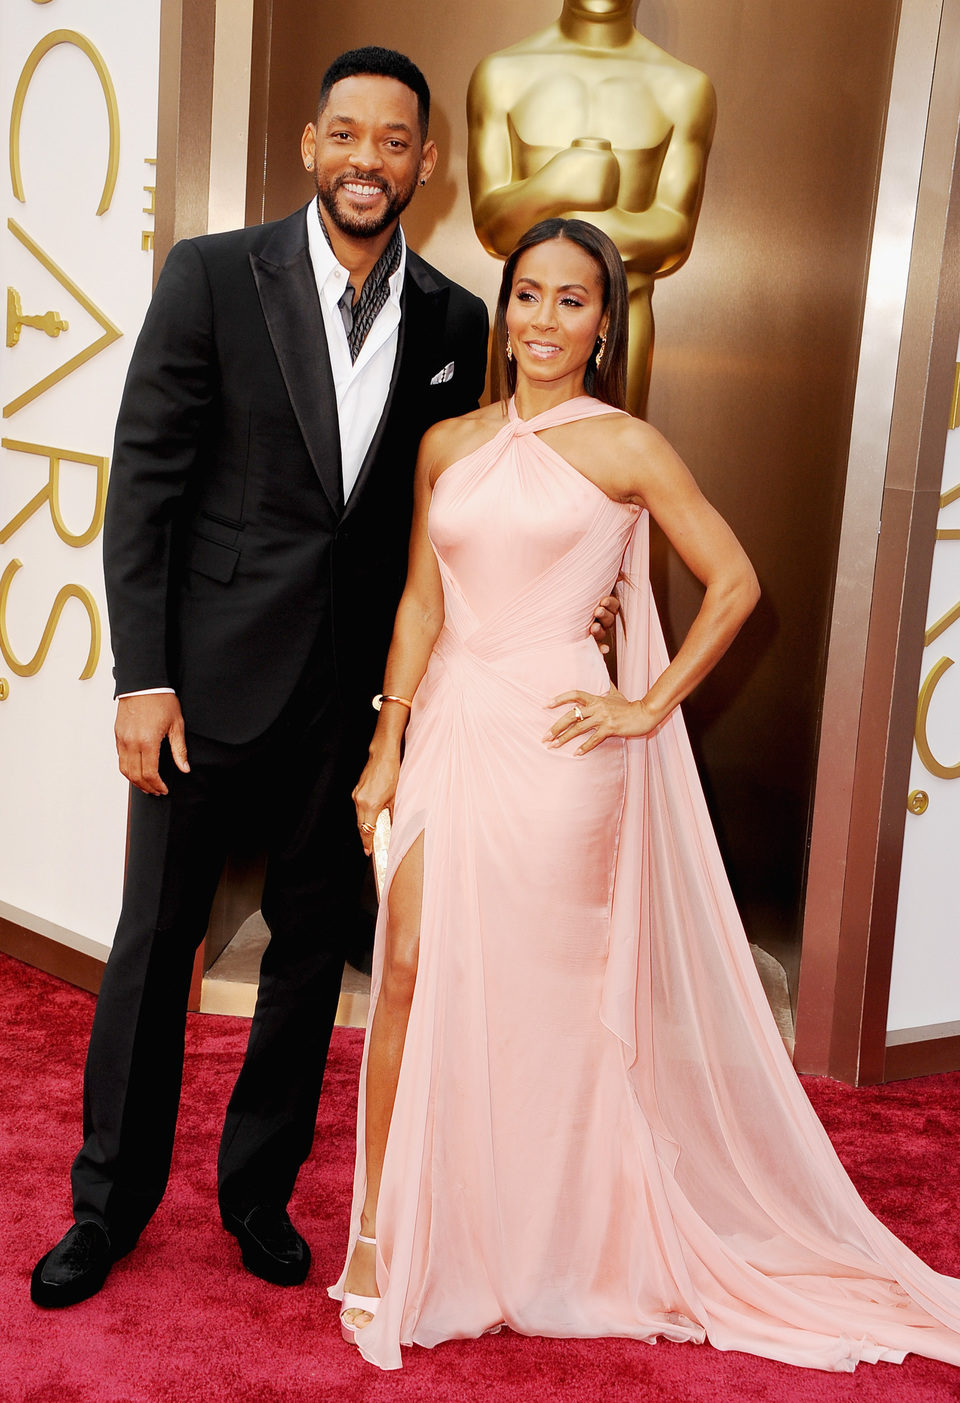 Will Smith y Jada Pinkett Smith en los Oscars 2014